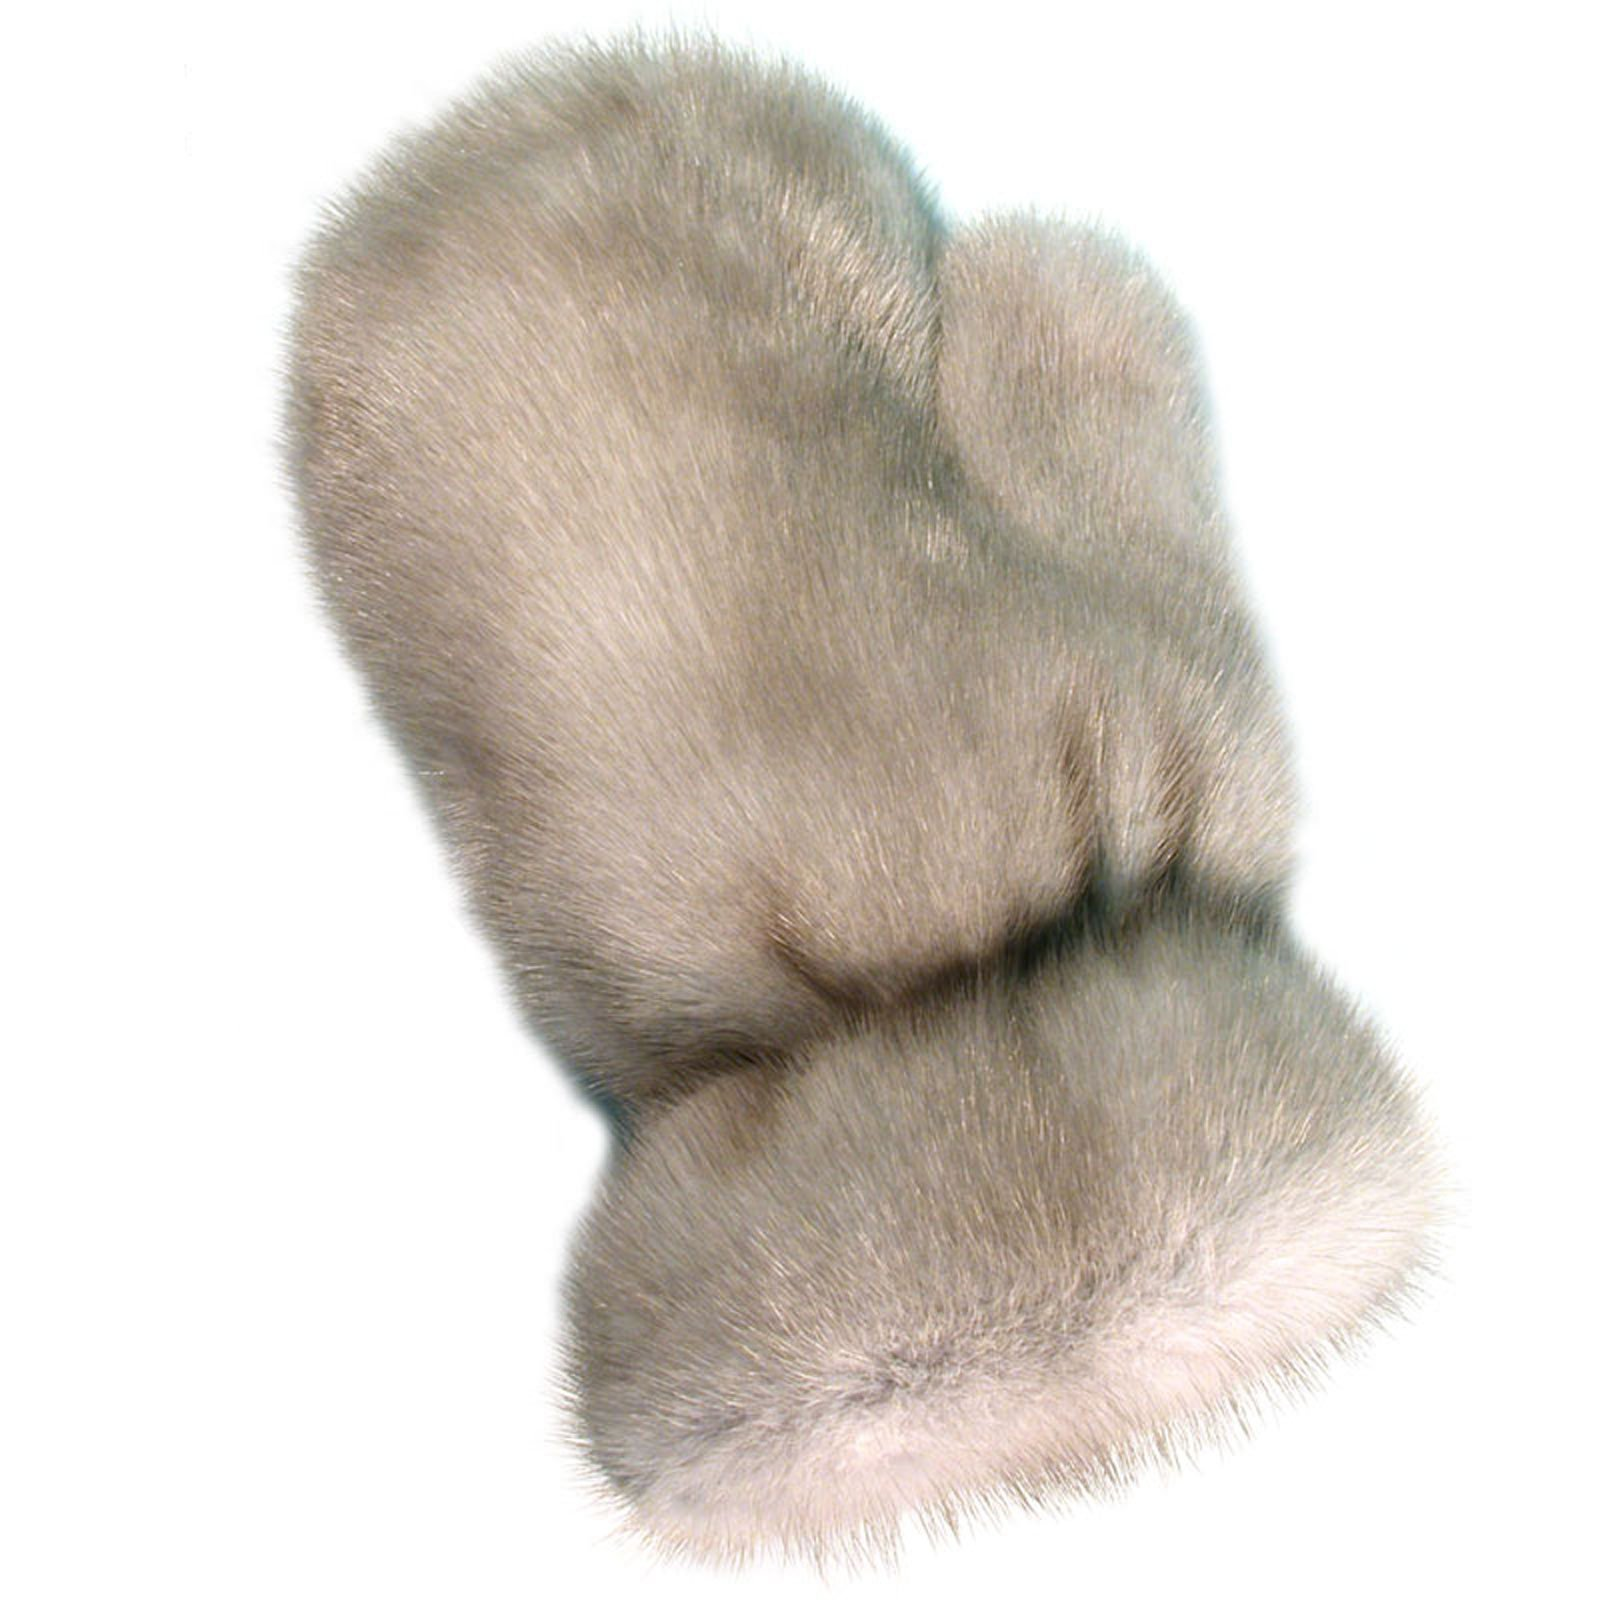 MinkgLove Mink Massage Glove, Silky and Textured Feel, Sapphire Grey Color, Hand Tailored, Unisex, One Size - Double Sided Fur